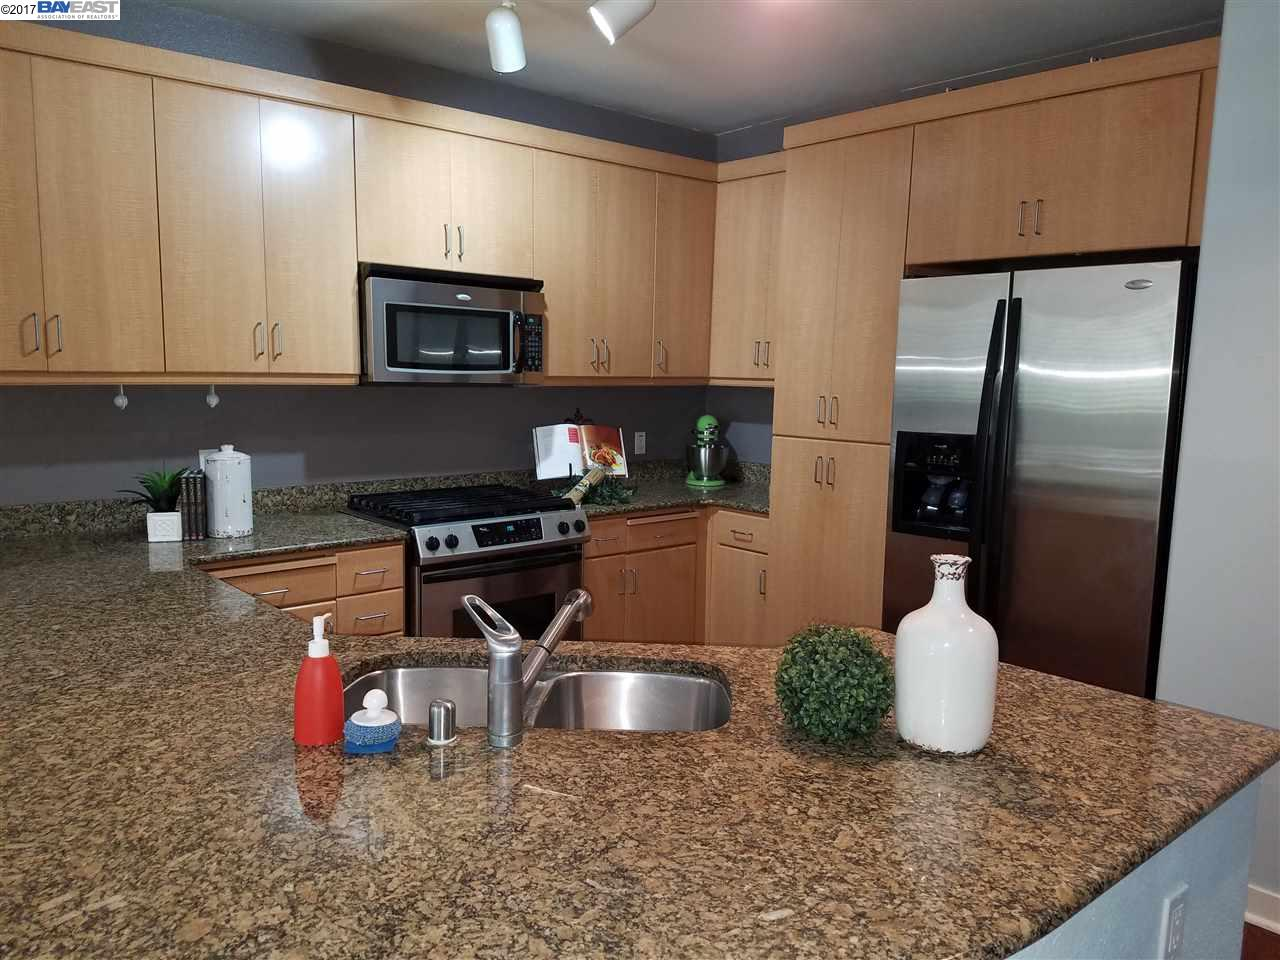 Additional photo for property listing at 5501 De Marcus Blvd  Dublin, California 94568 United States